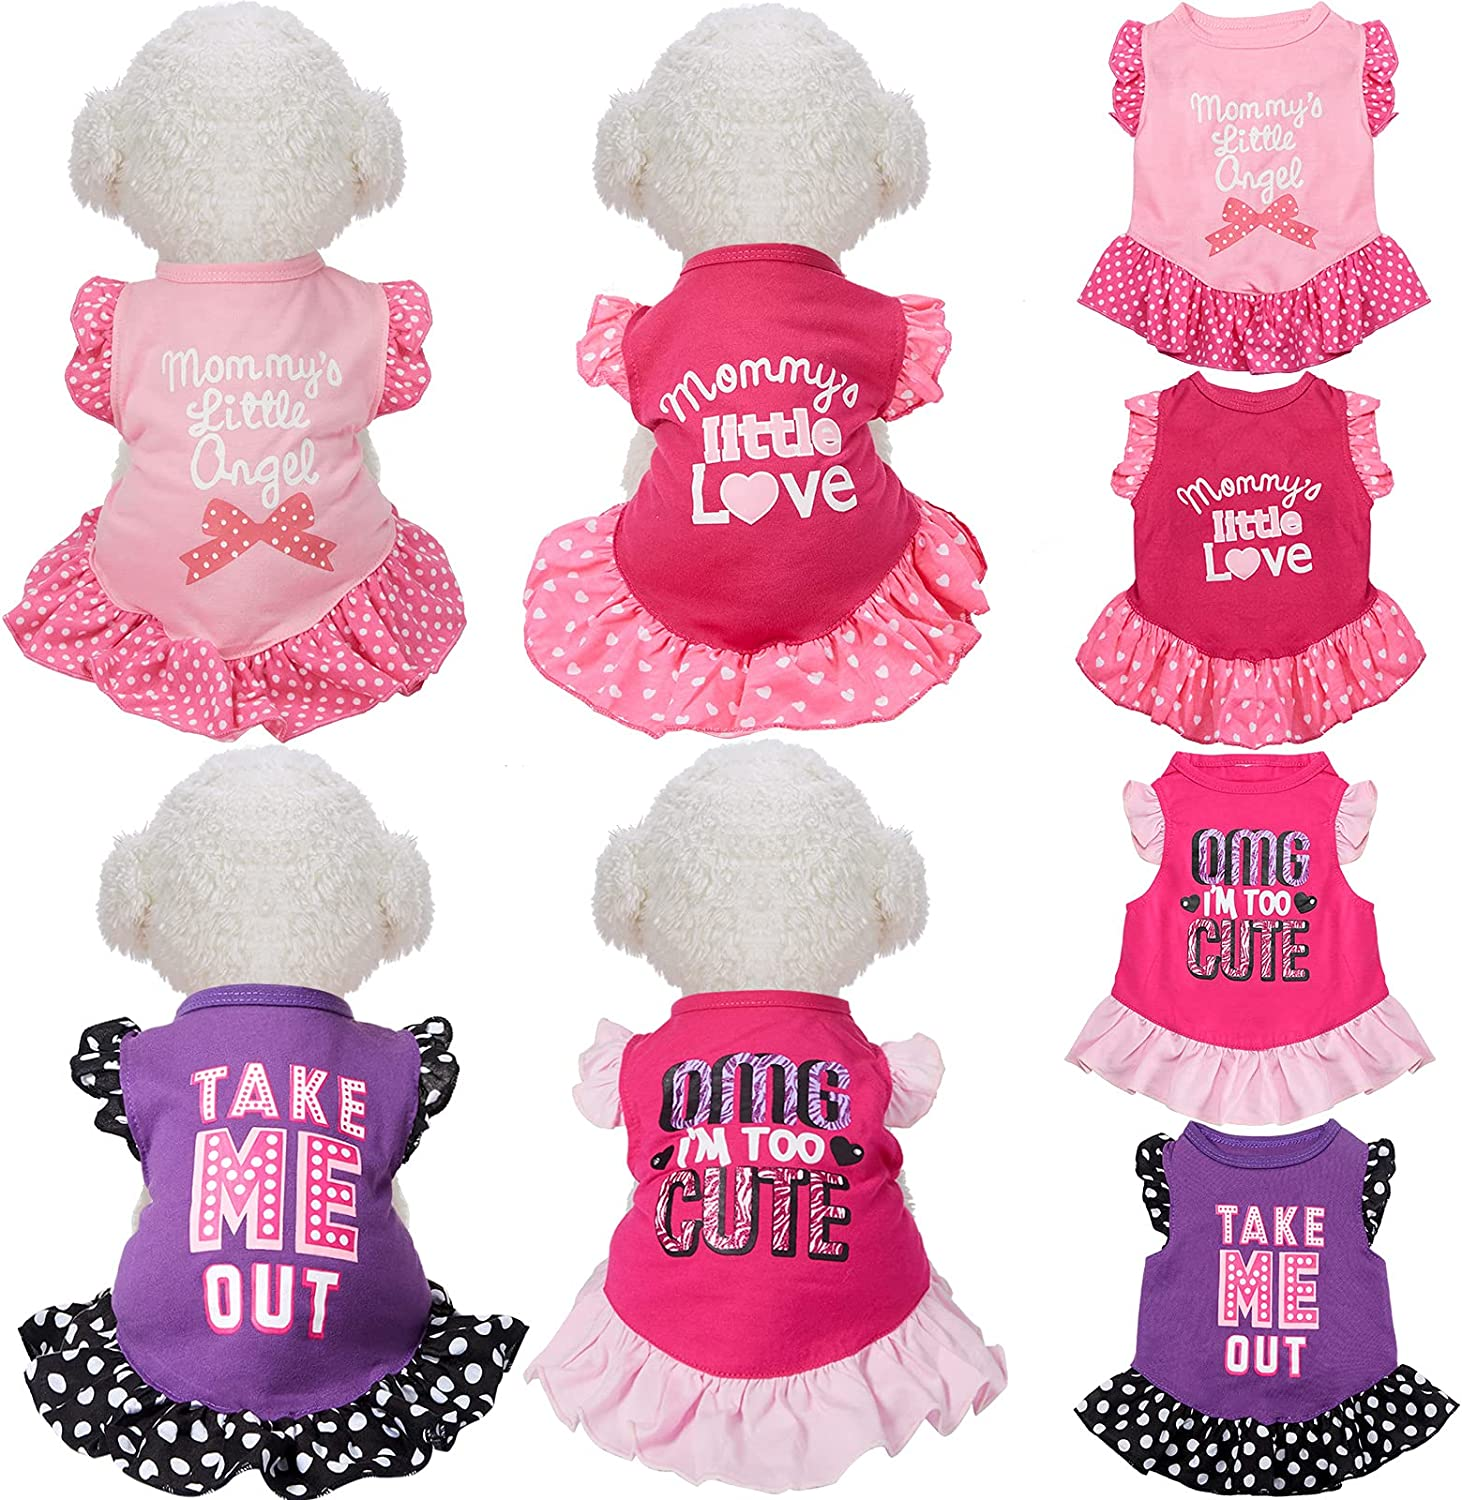 Large-scale sale 4 Pieces Pet Dress Shirt Complete Free Shipping Sundress Printed Dog Cute Princess